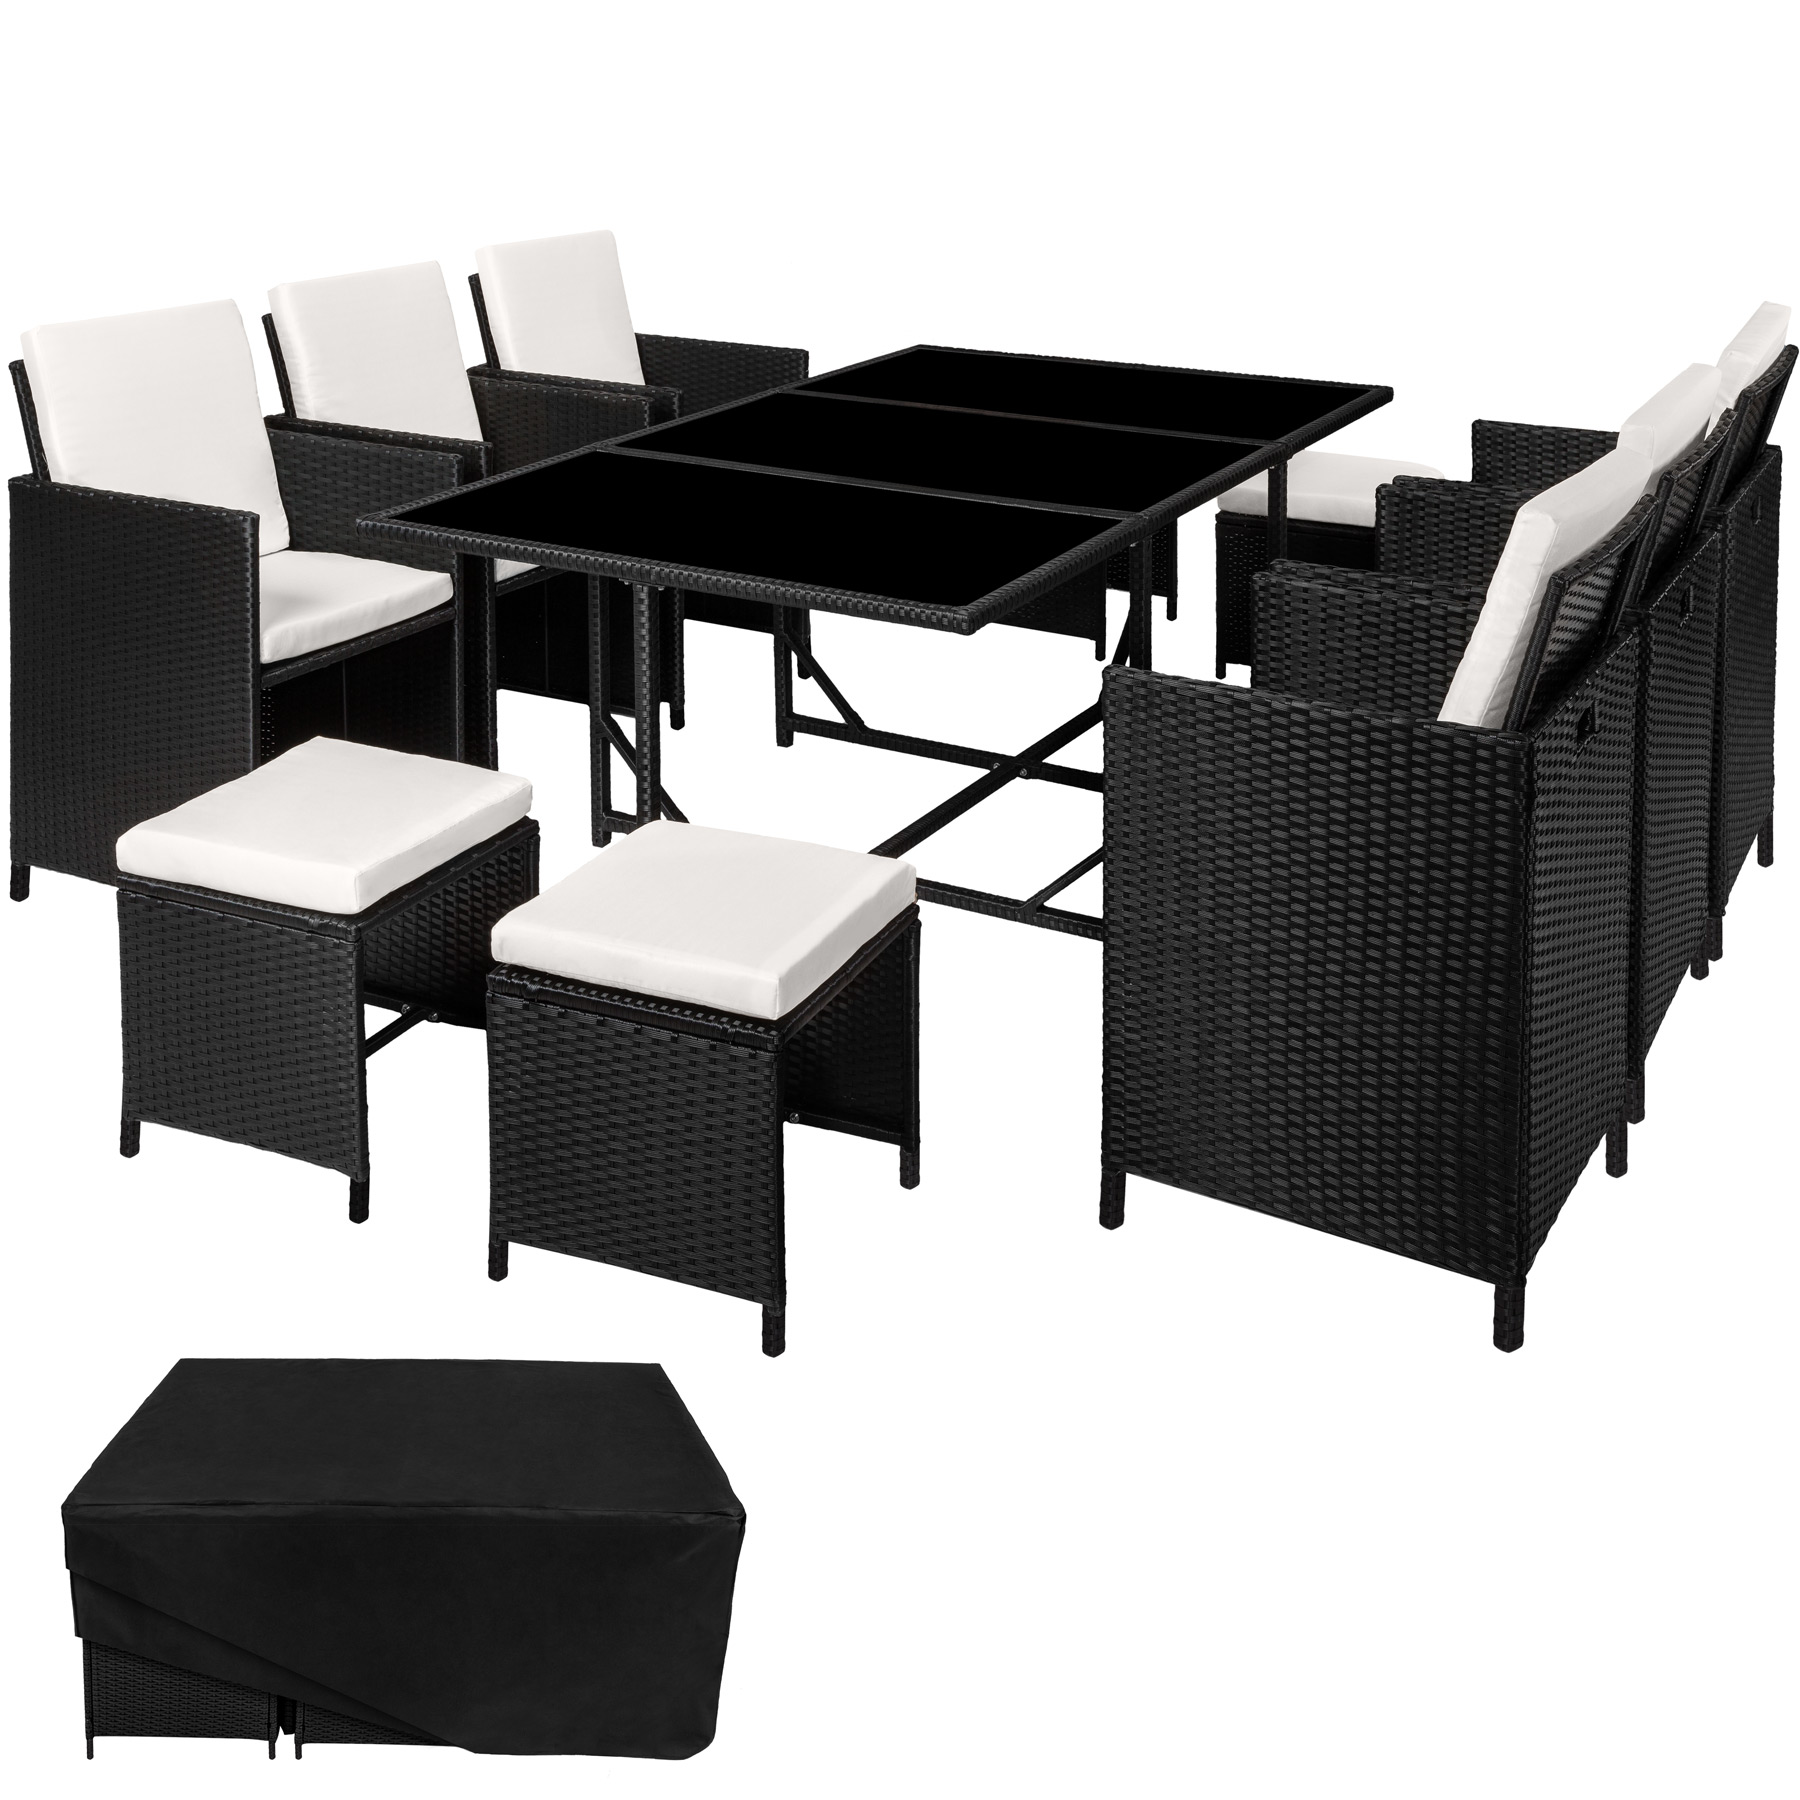 garden furniture set dining wicker 10 seater chair stool table black